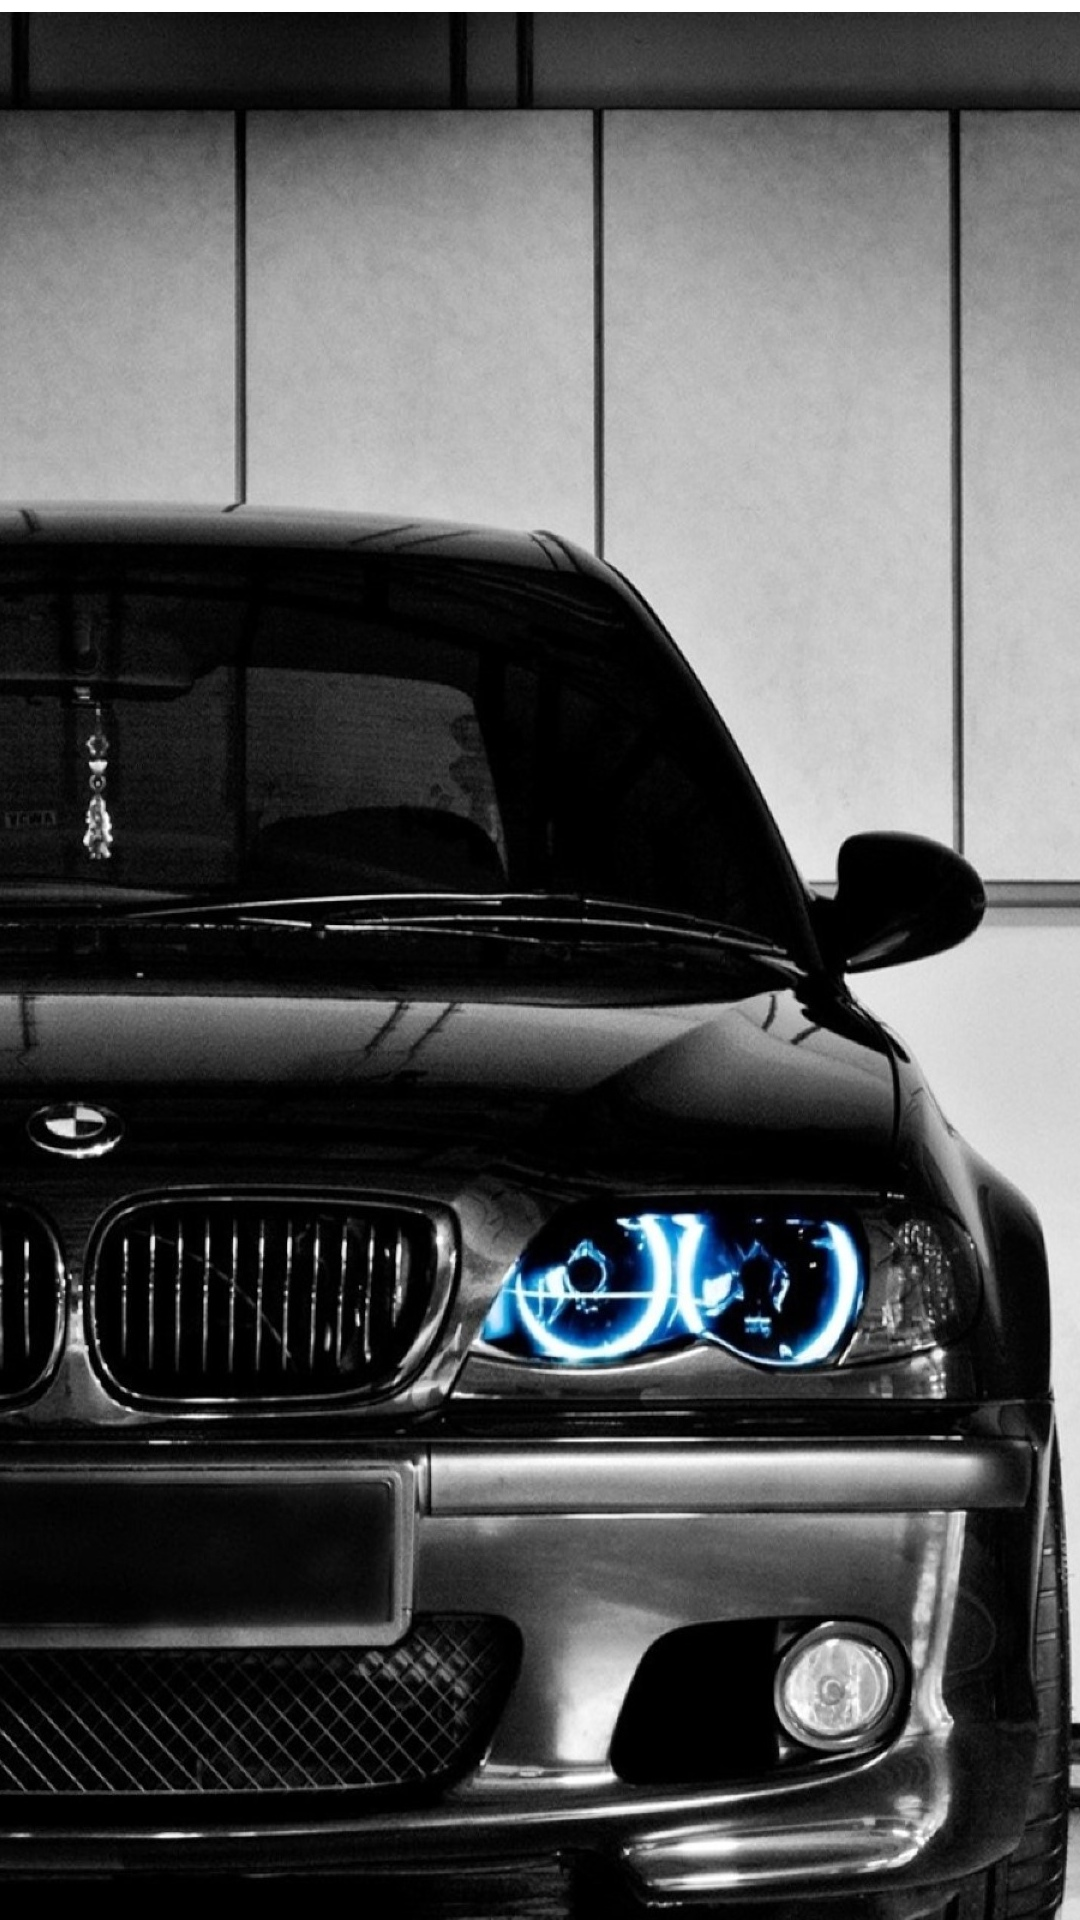 Black Bmw Front Blue Led Iphone 6 Plus Hd Wallpaper Bmw Wallpaper Phone Hd 1080x1920 Wallpaper Teahub Io